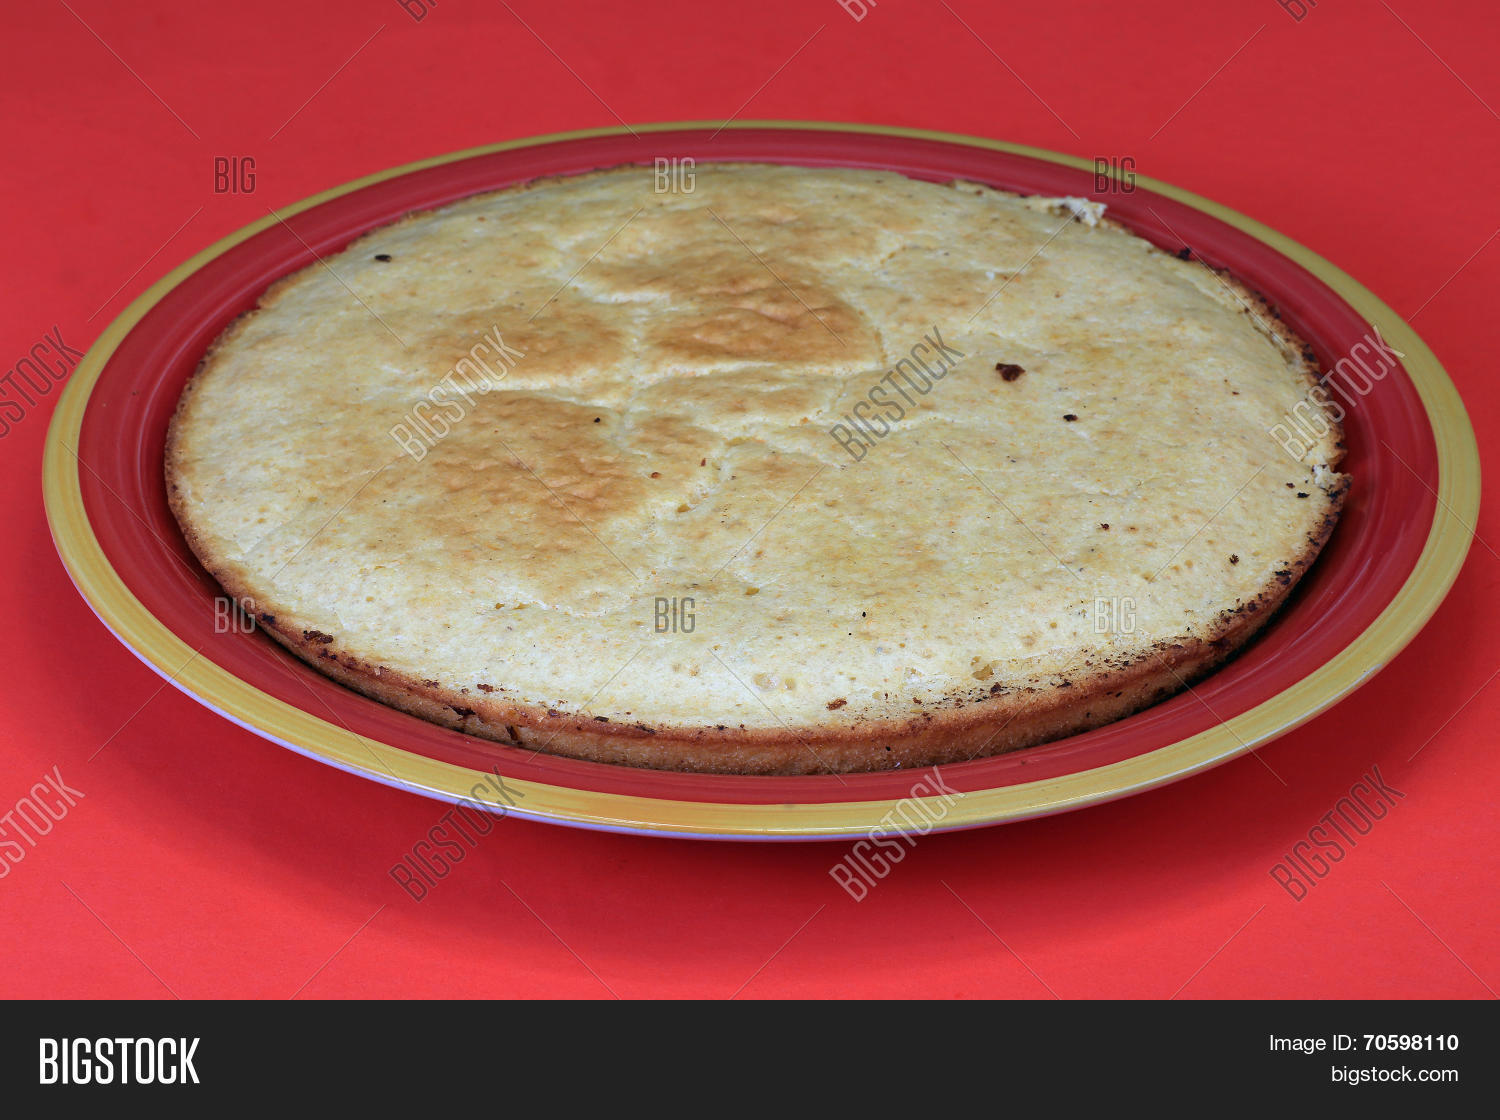 Corn Pone On Red Plate Image Photo Free Trial Bigstock